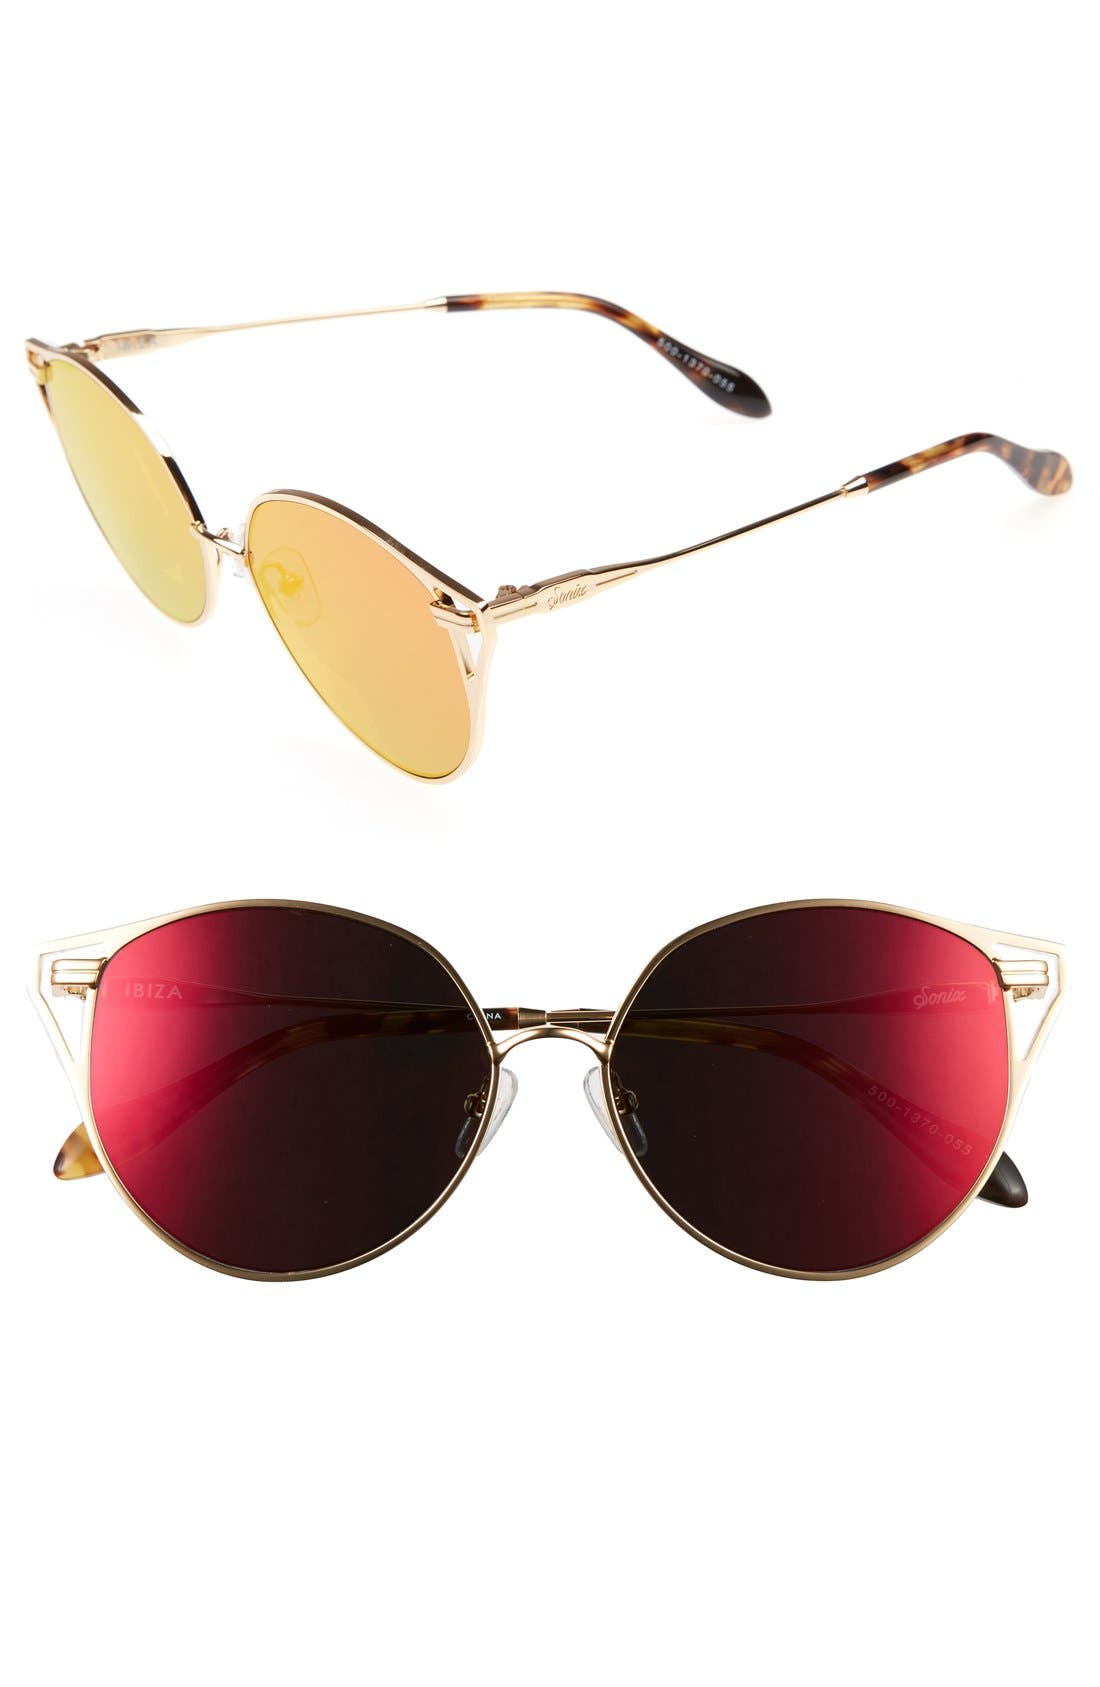 SONIX Ibiza 55mm Mirrored Round Sunglasses